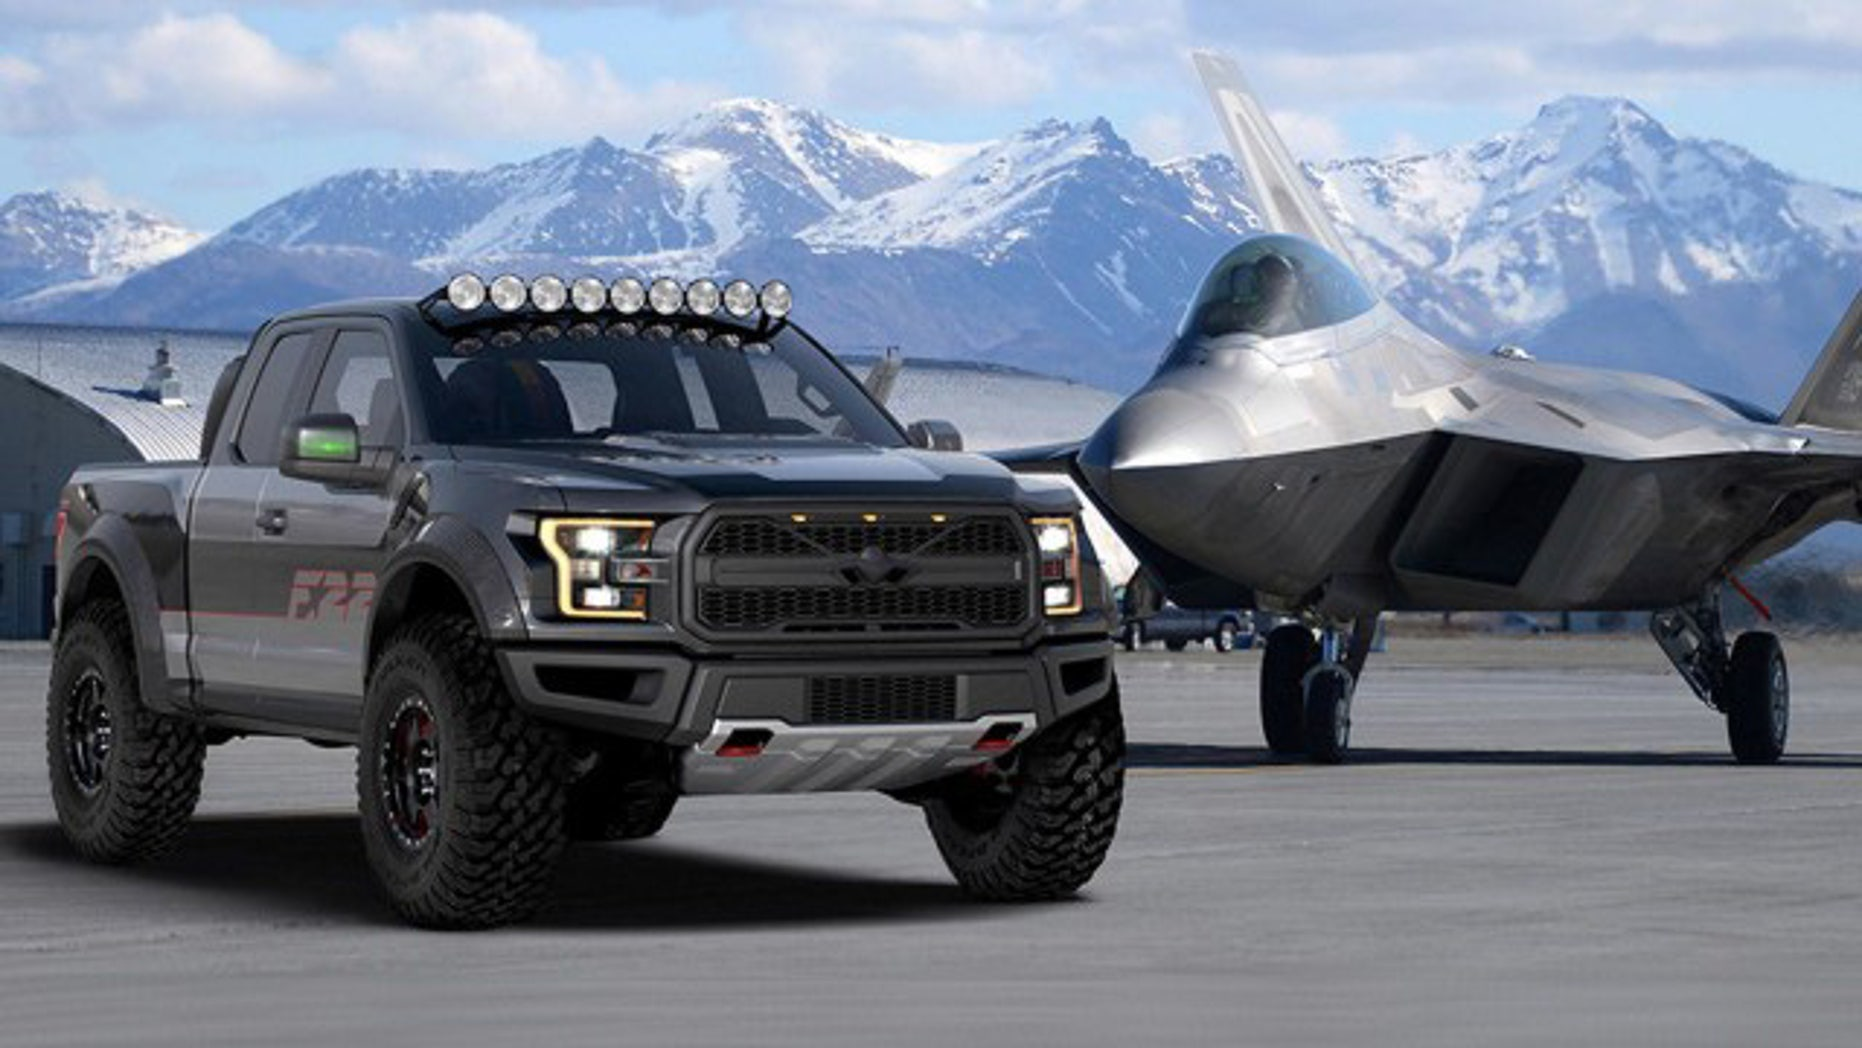 This F-150 Raptor has nearly 100 more horsepower than the base model